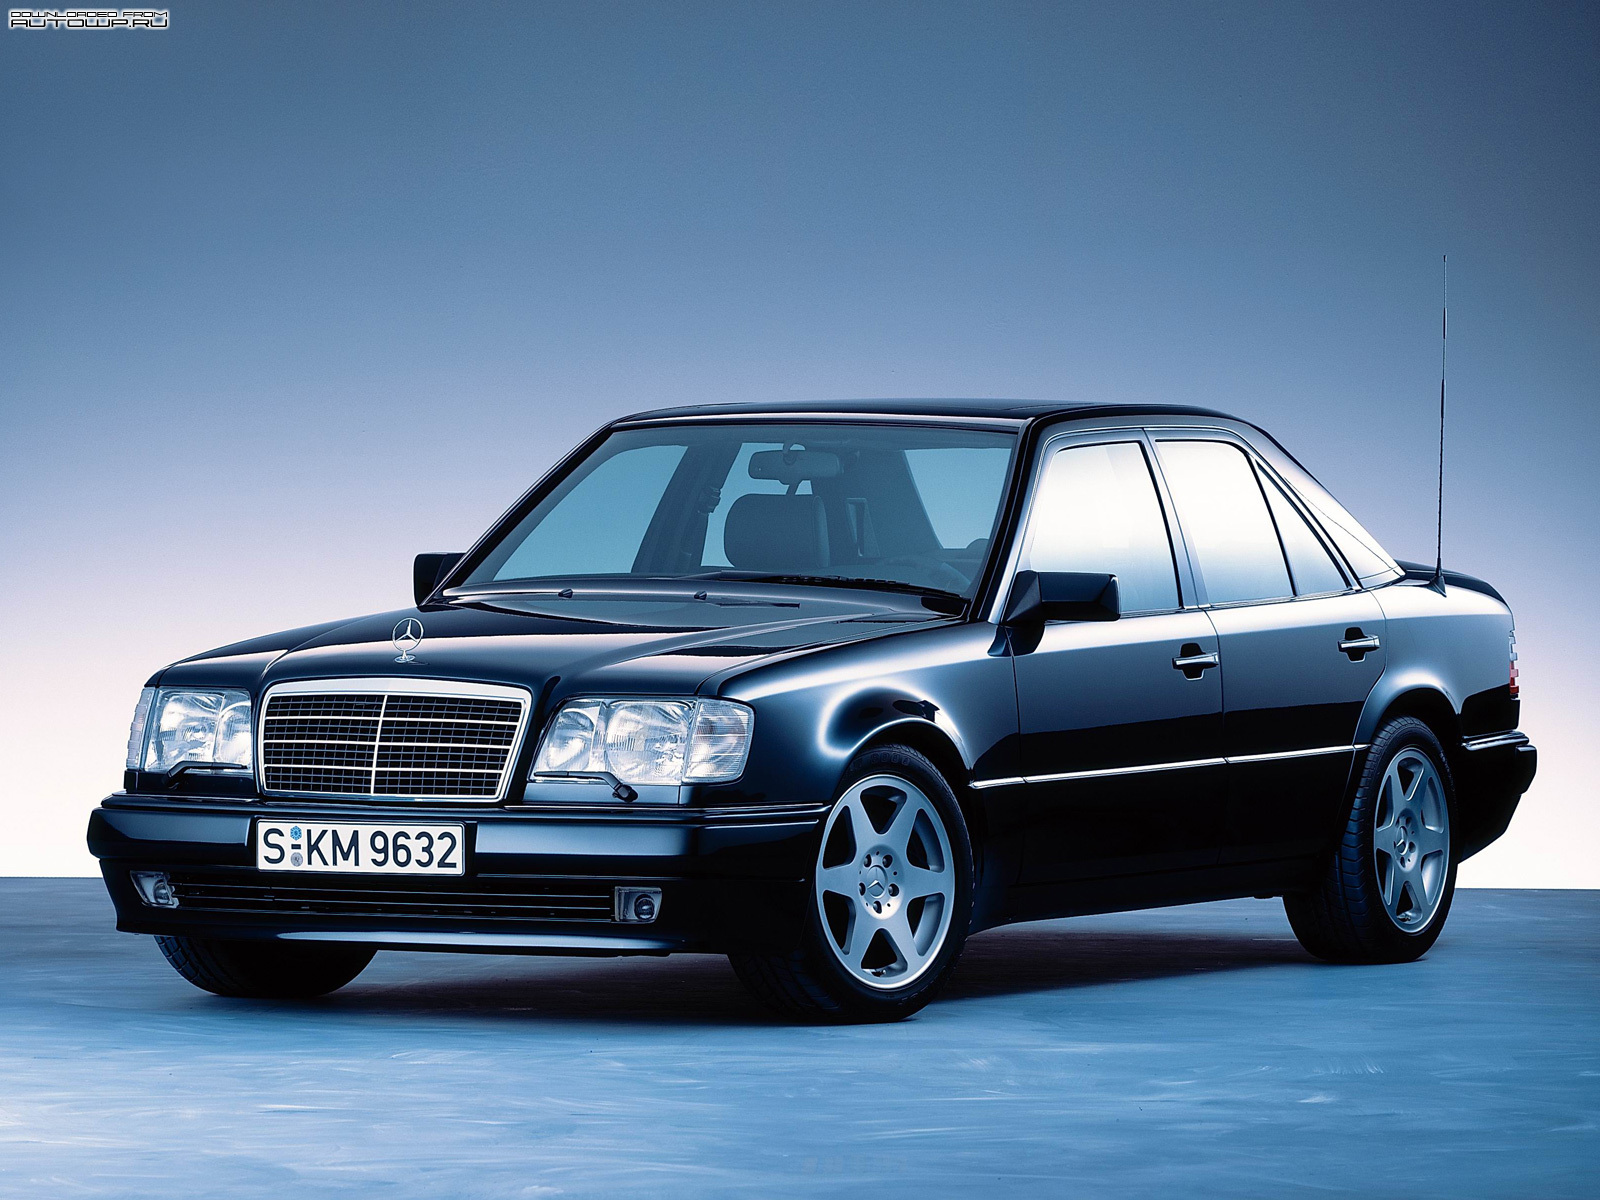 mercedes w124 images #5